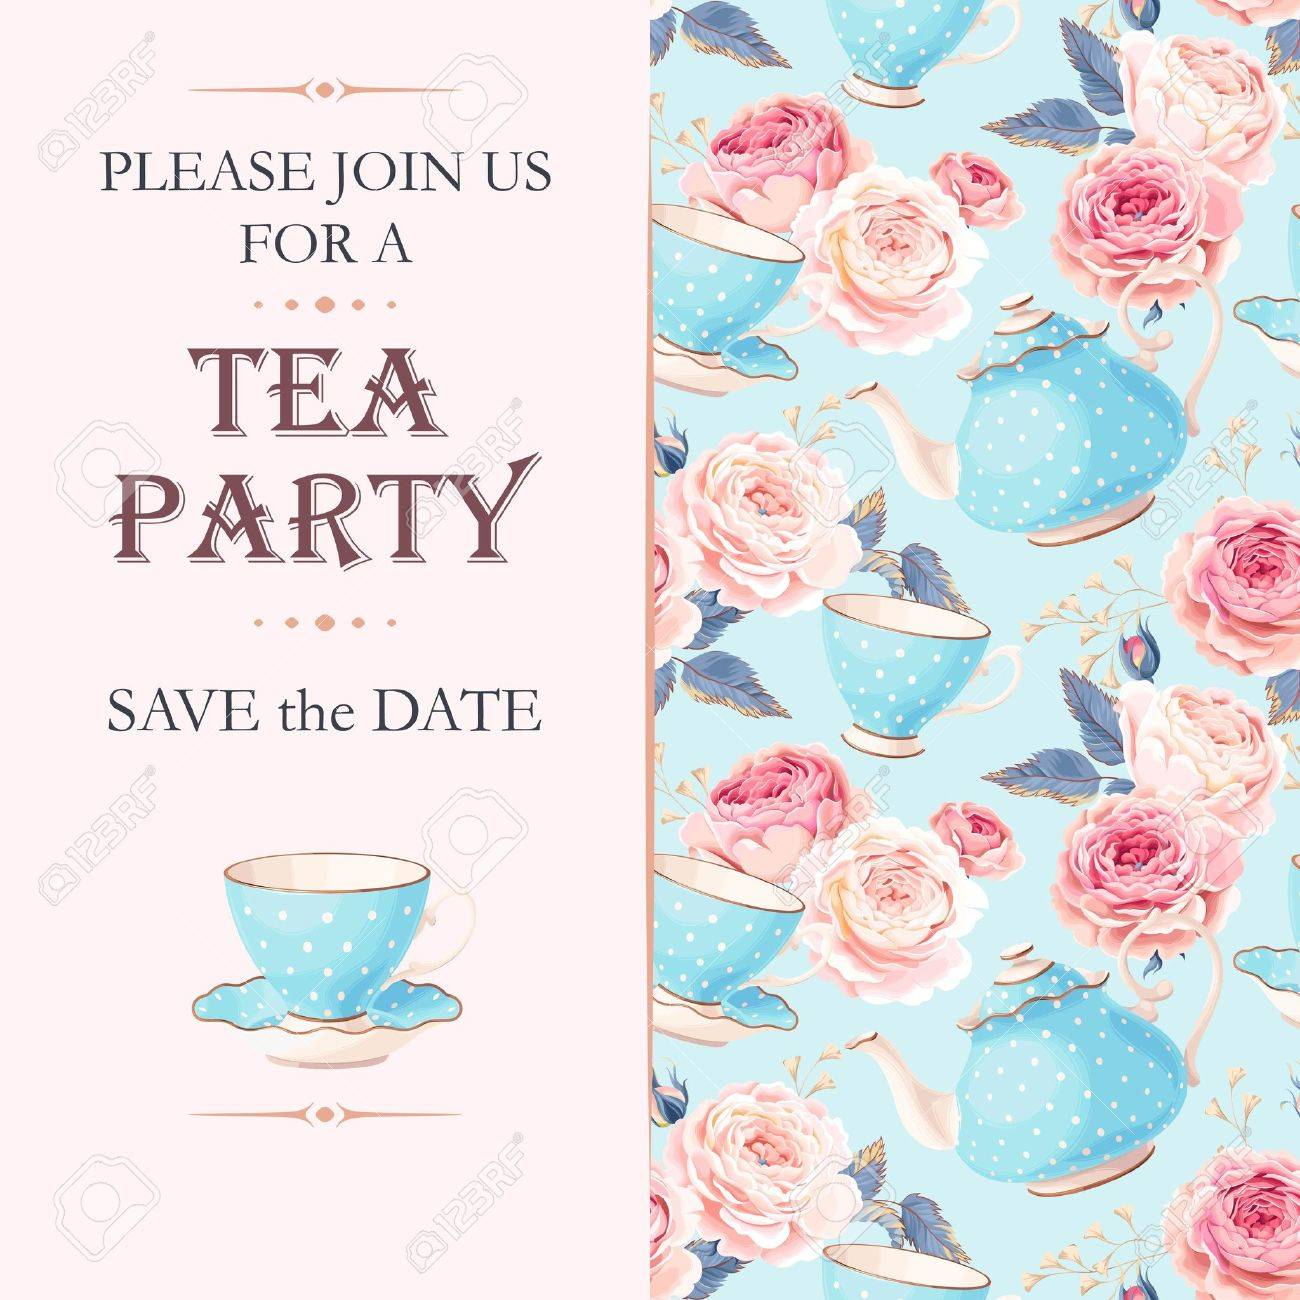 Vector tea party invitation with cups and flowers - 67481366